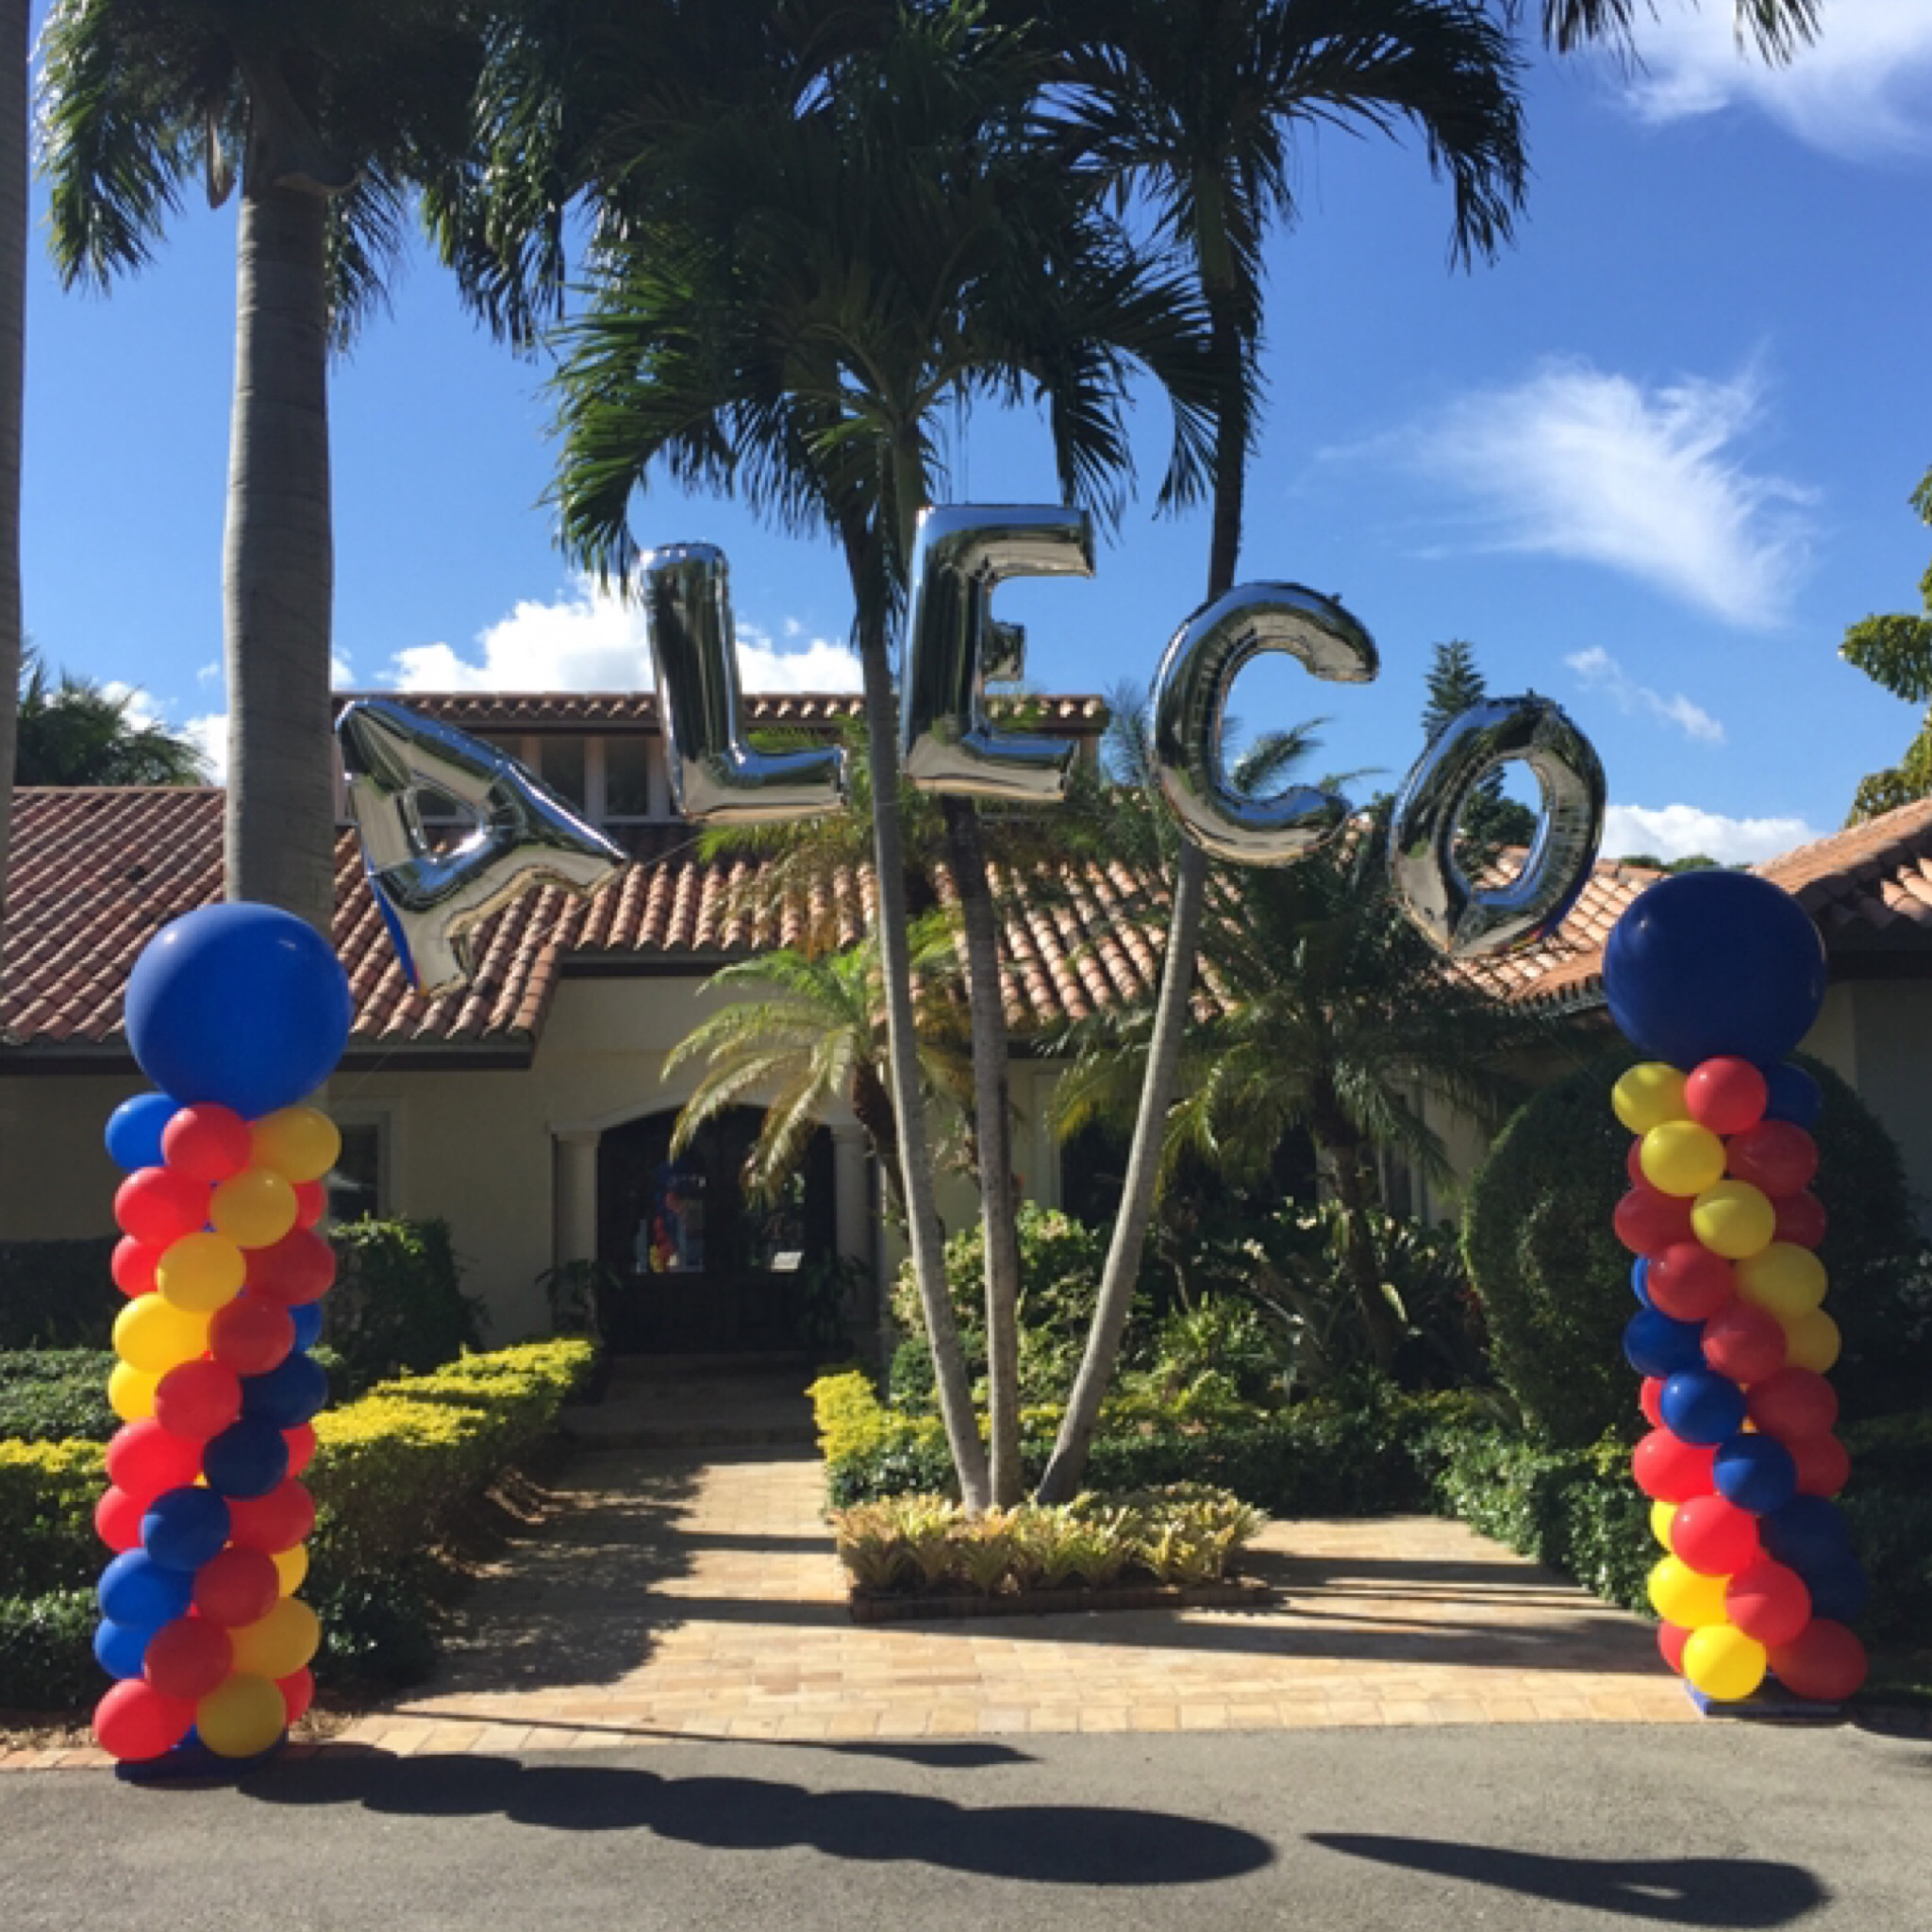 Personalized Name balloon arch wit giant letters